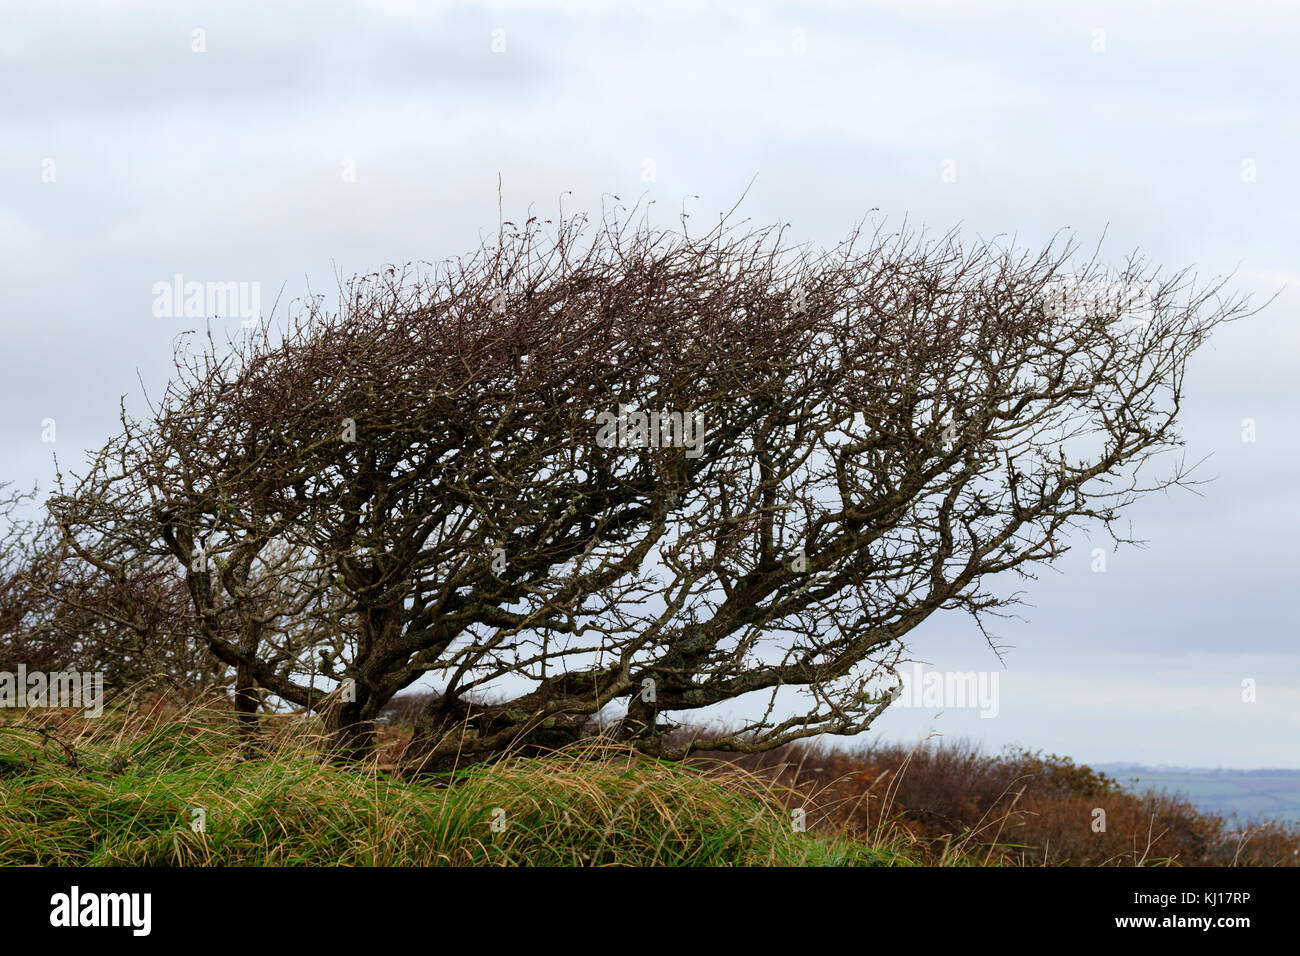 Winter bare, wind sculpted hawthorn, Crataegus monogyna, on the cliffs of Sharp Tor above Salcombe, South Devon, - Stock Image